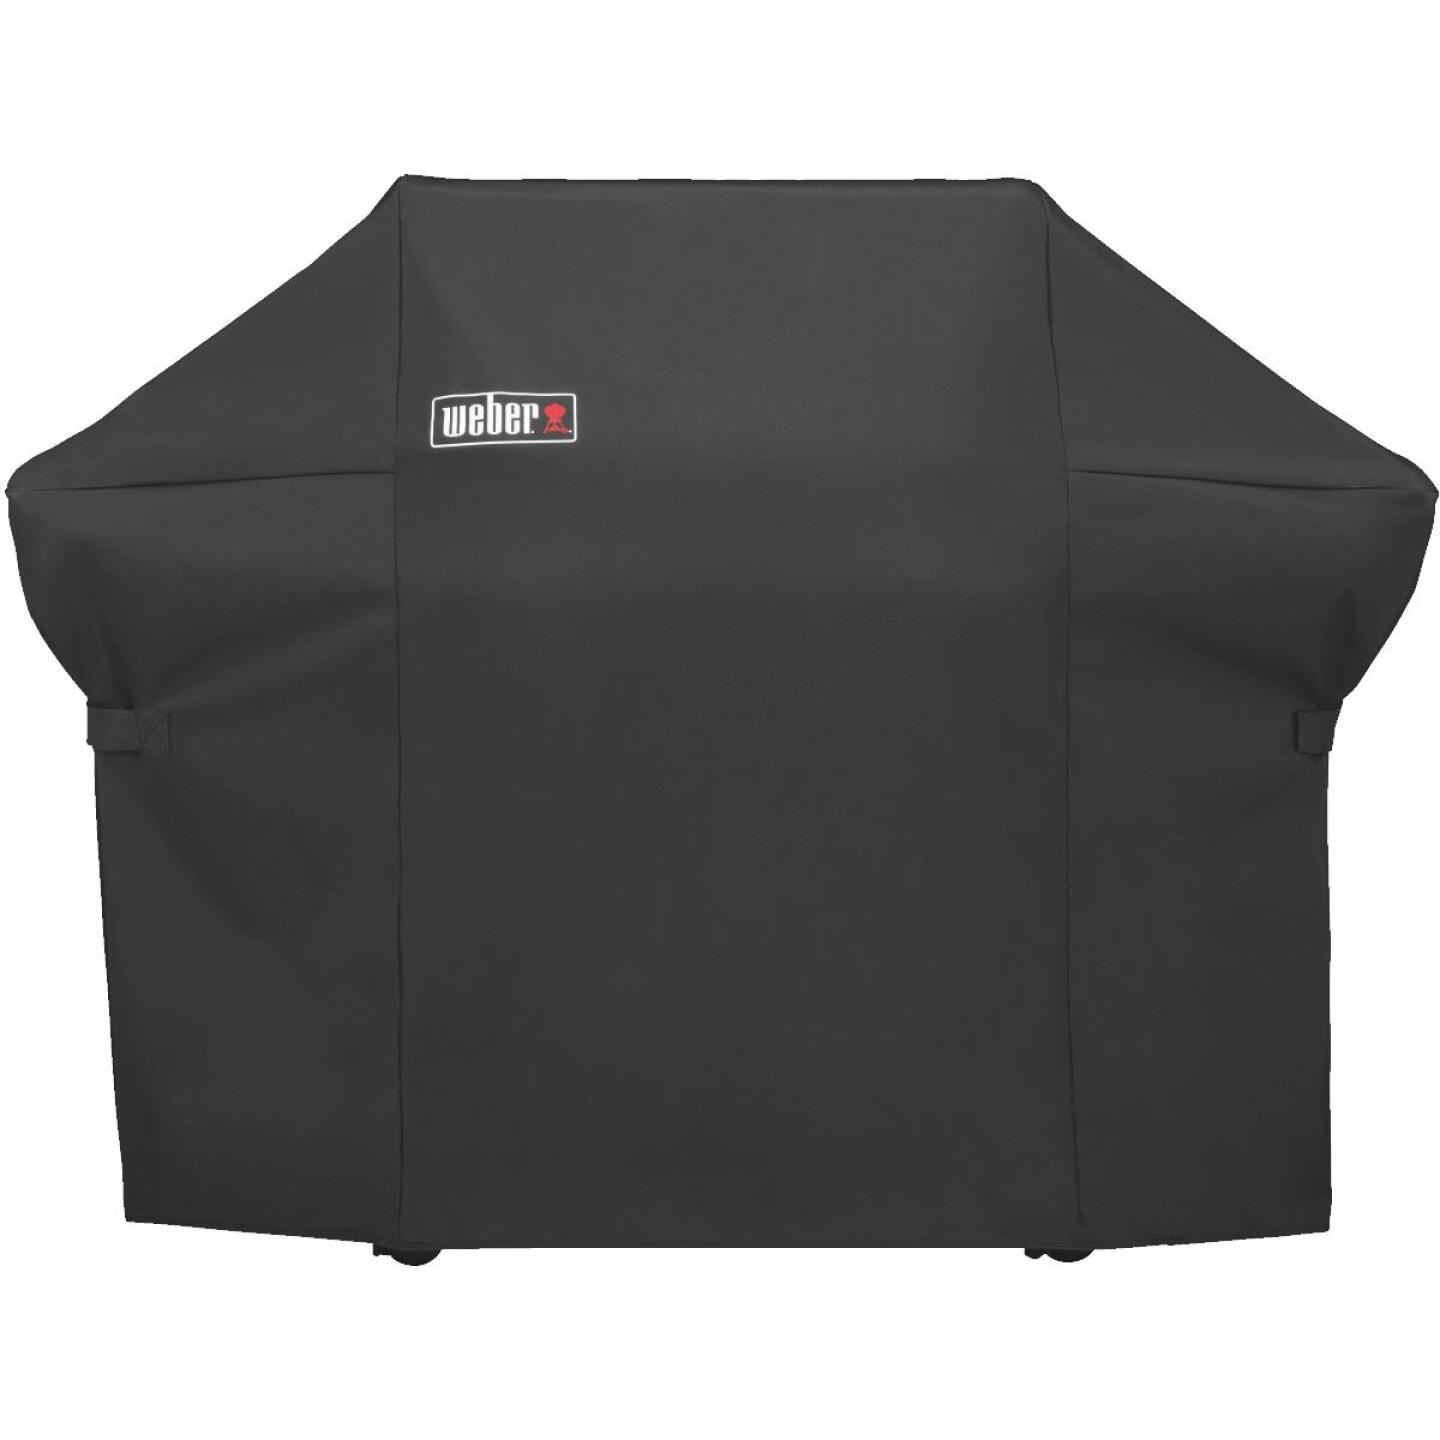 Weber Summit 400S Premium 67 In. Black Polyester Grill Cover Image 2